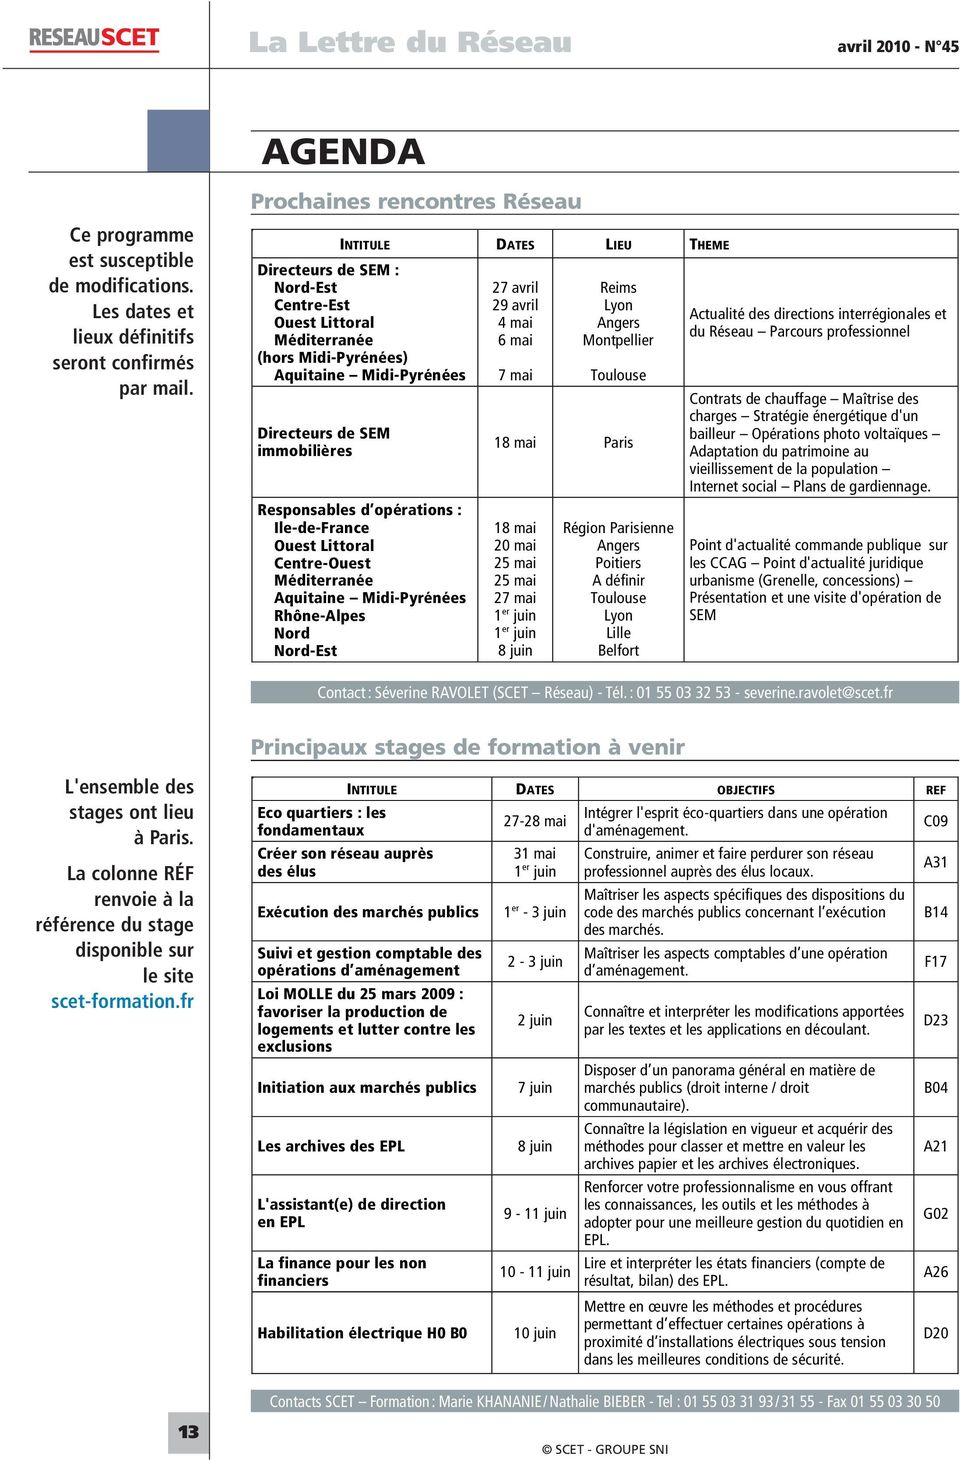 Responsables d opérations : Internet social Plans de gardiennage.